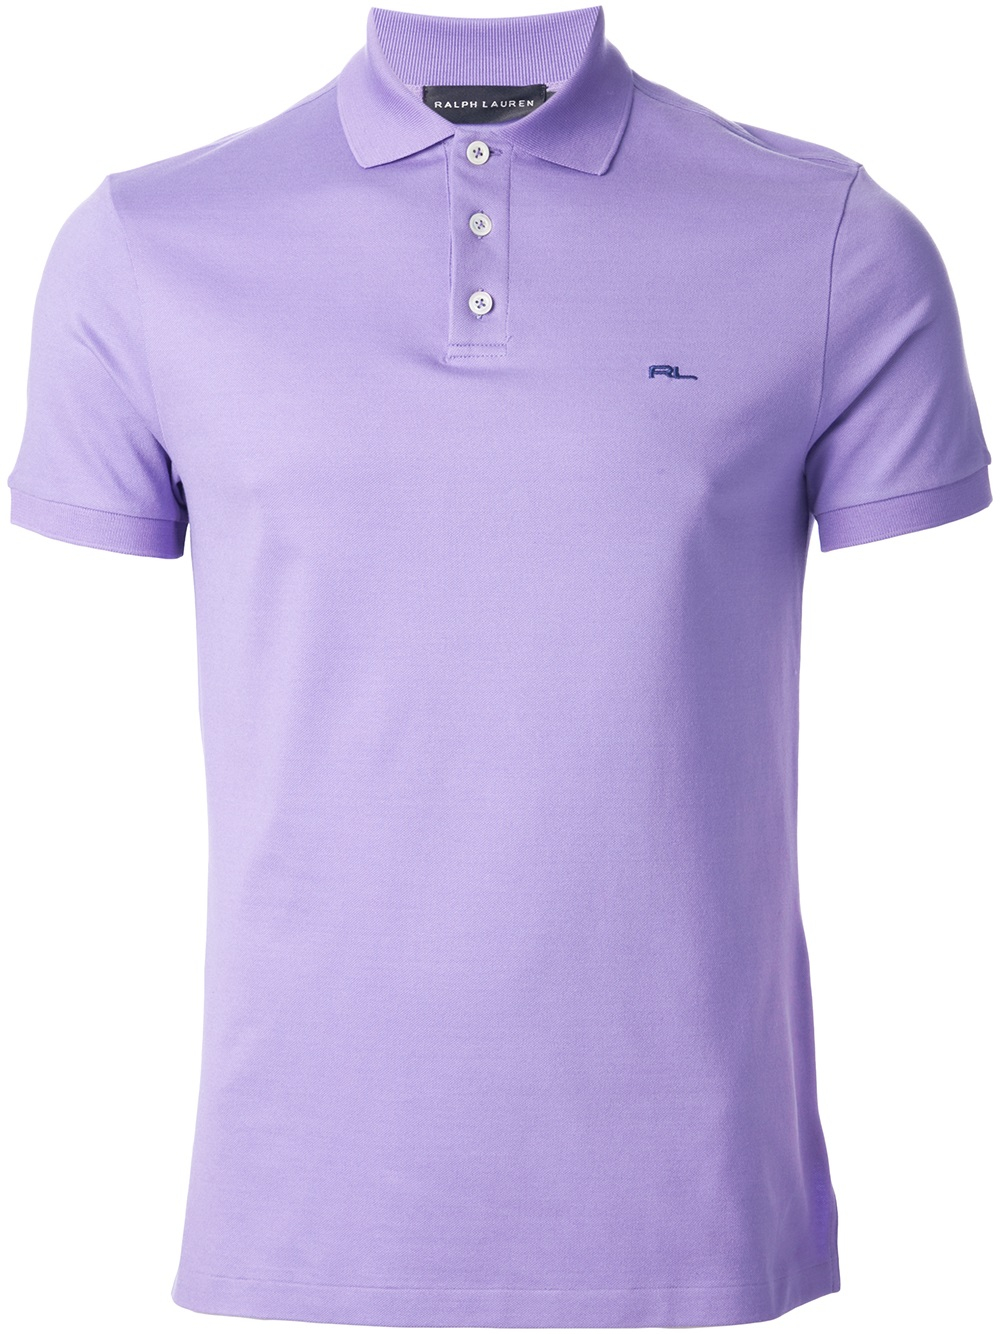 Ralph Lauren Black Label Logo Polo Shirt In Purple For Men